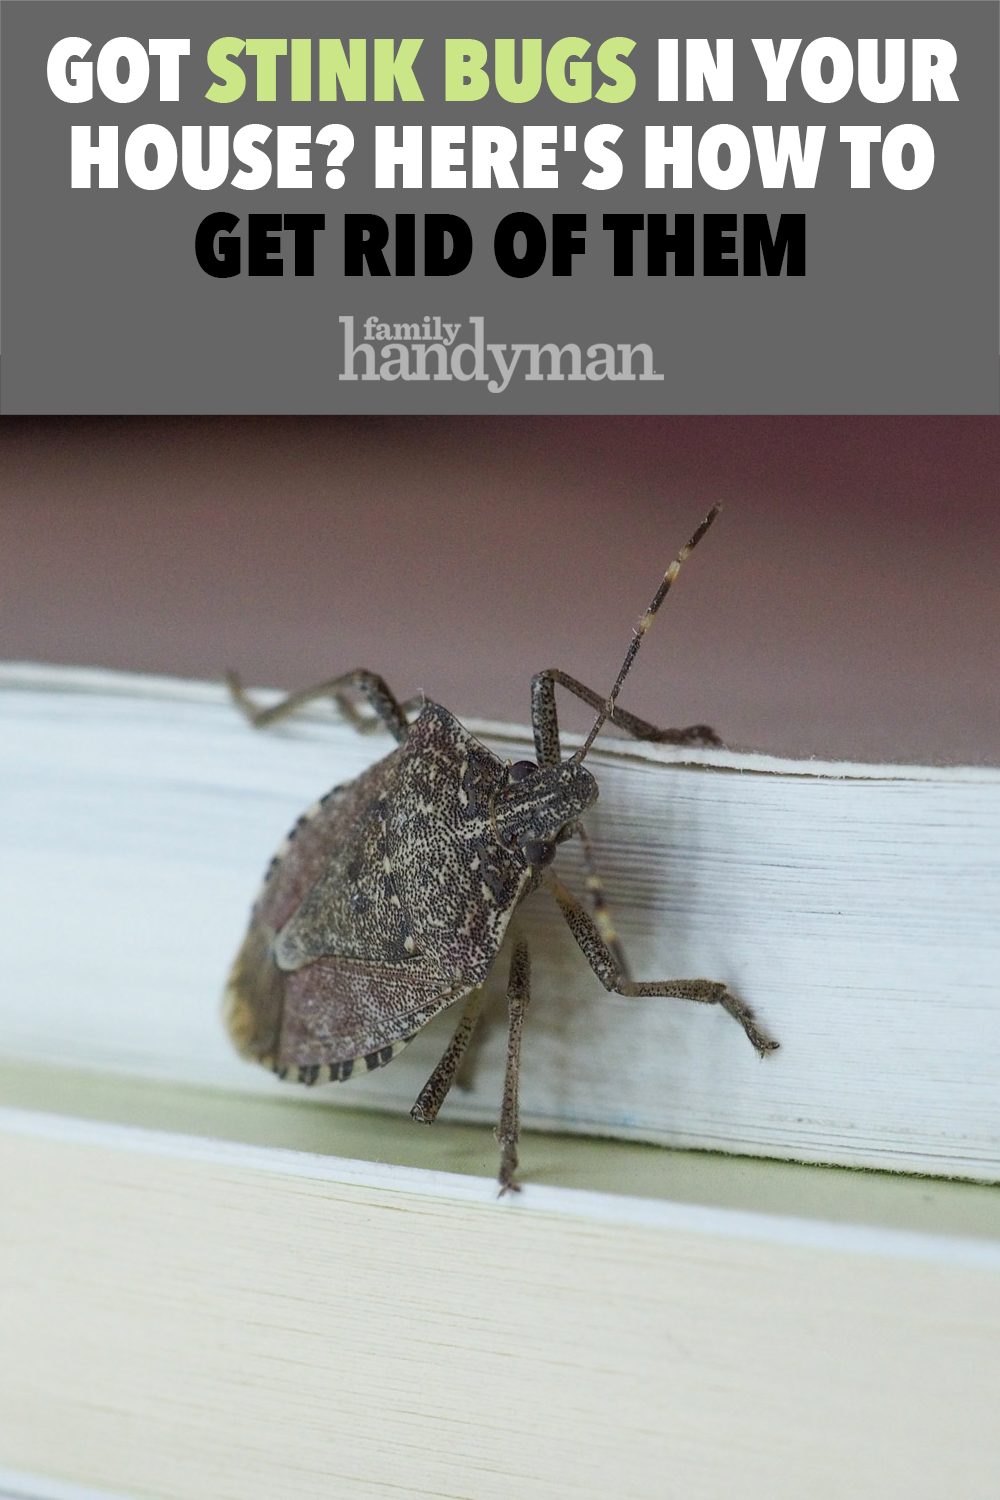 How To Get Rid Of Beetle Bugs In The House